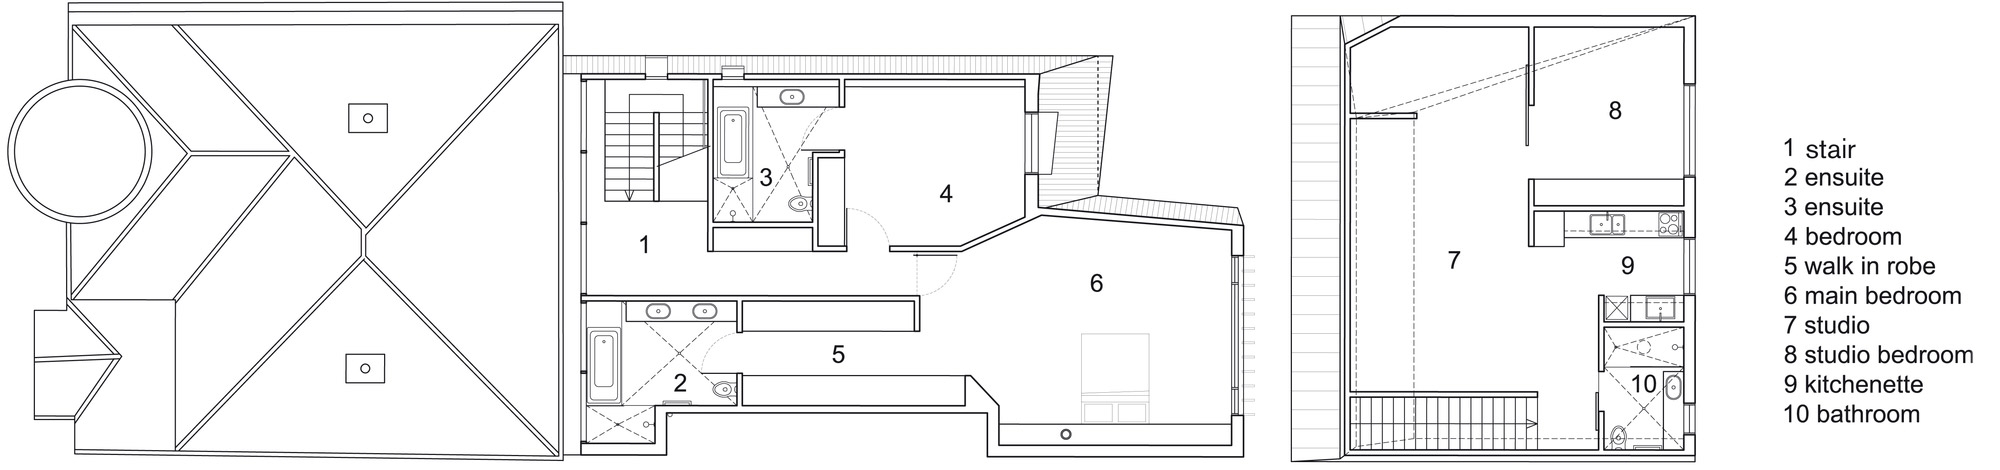 First Floor Plan, Enclave House in Melbourne, Australia by BKK Architects